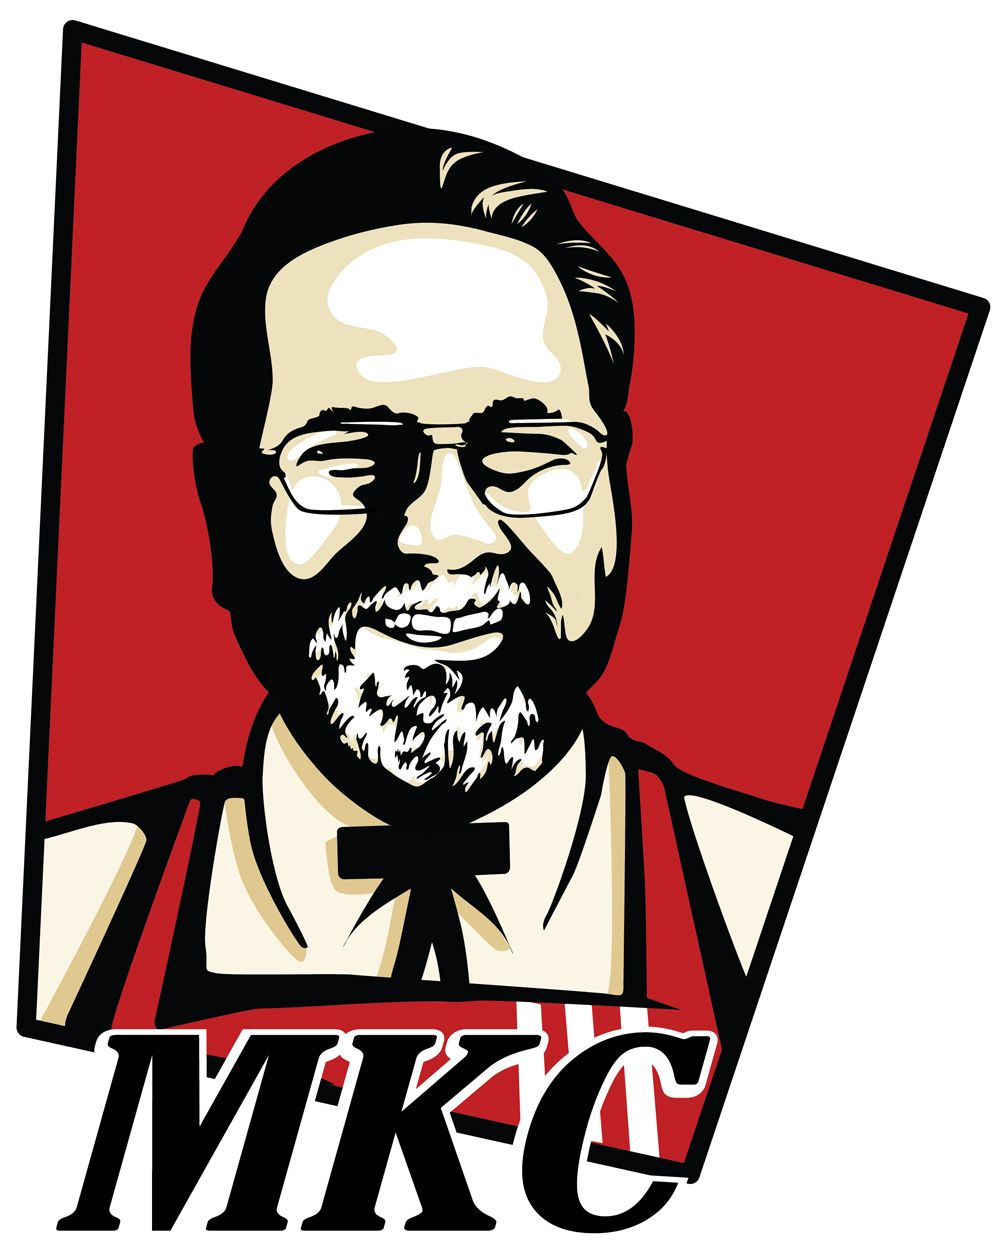 Draw you in kfc logo style caricature pop arts Dessin